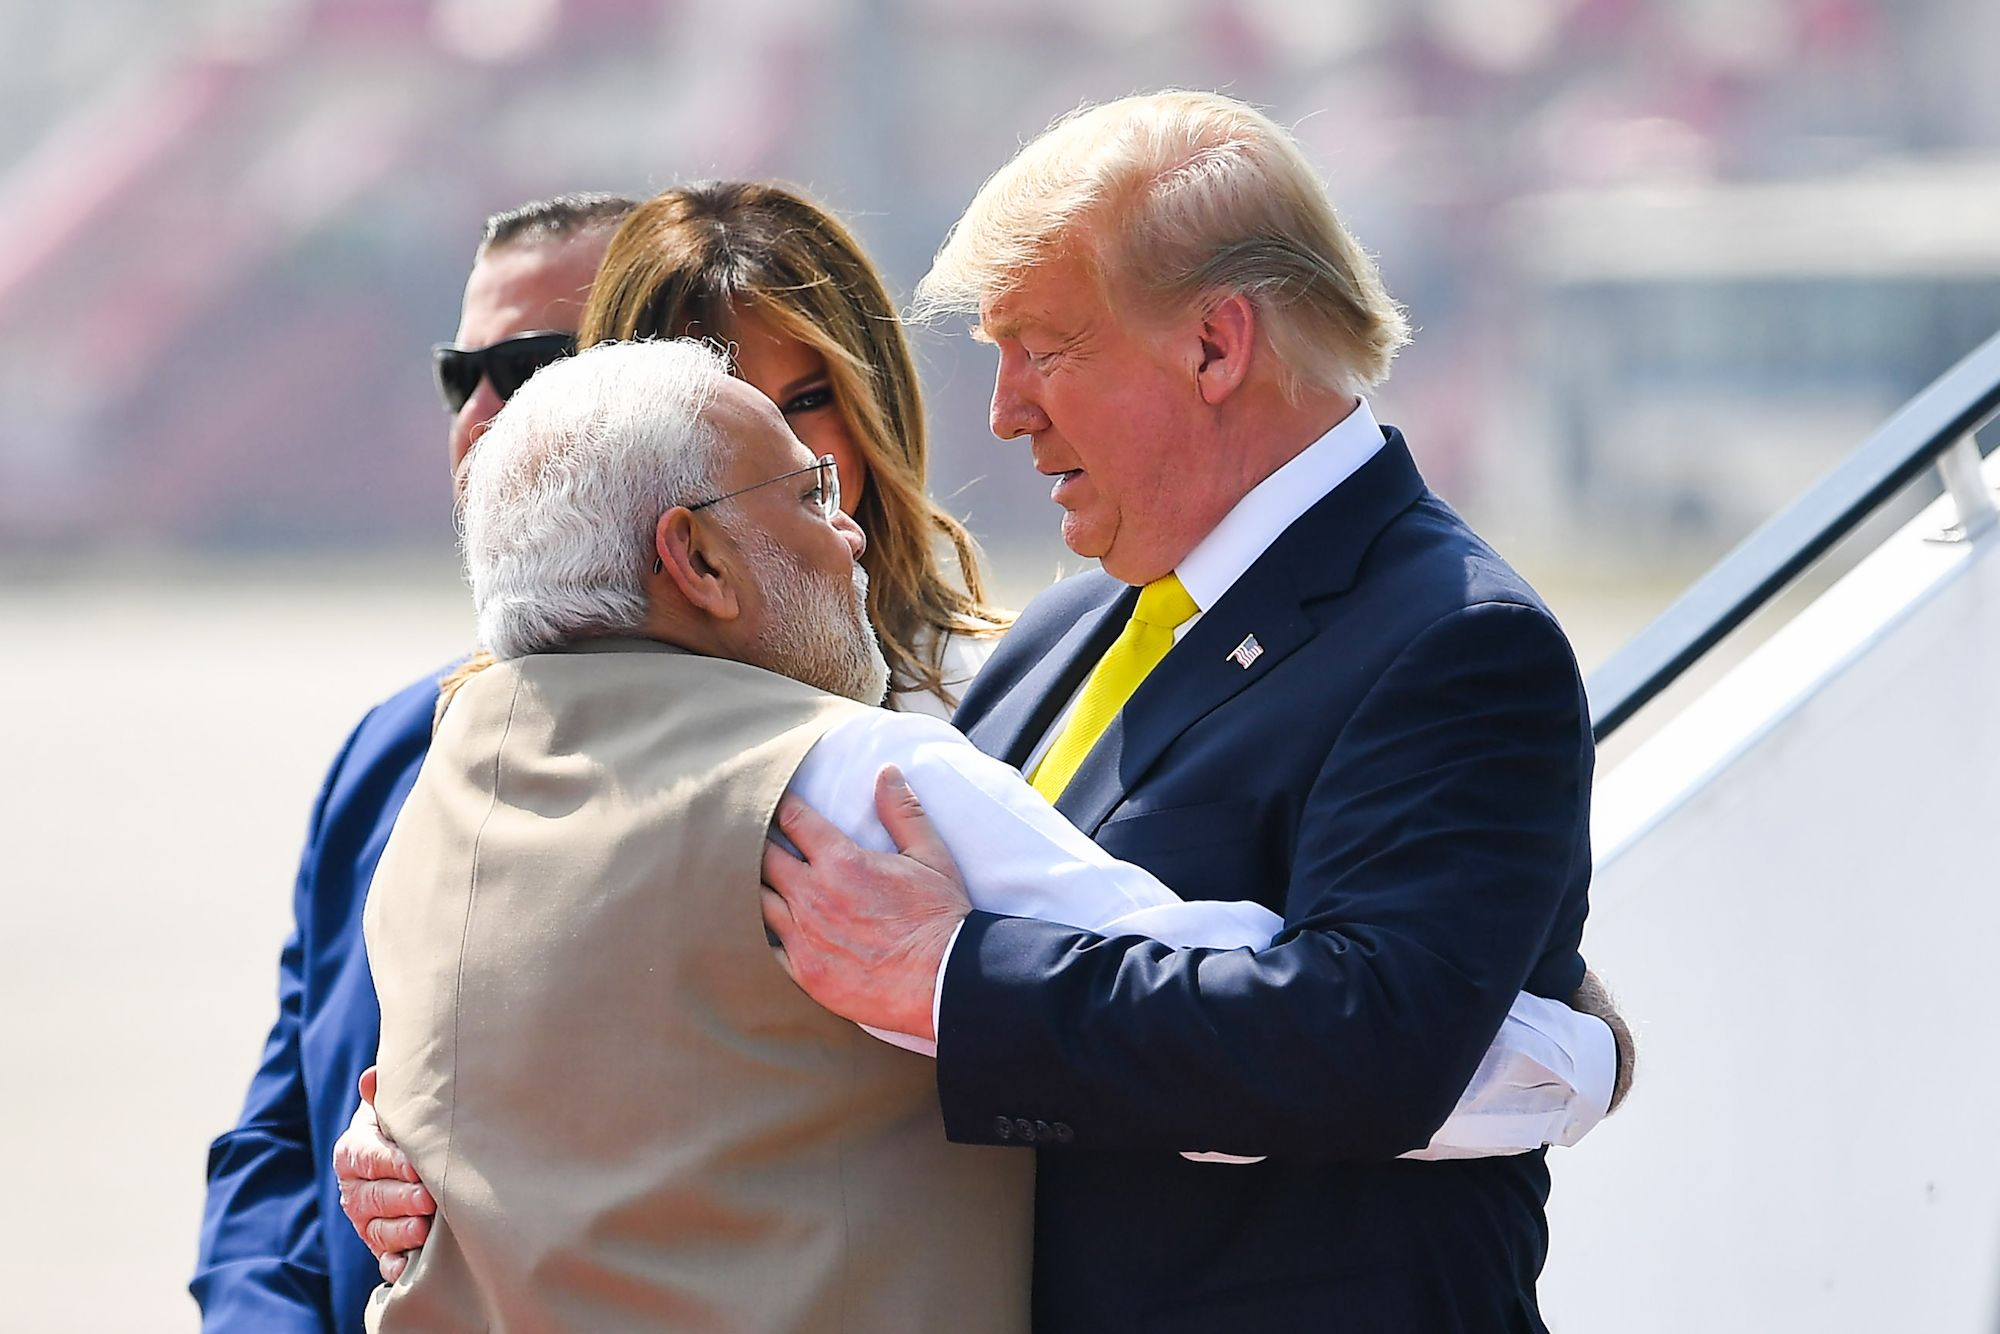 Donald Trump's India Visit Is a Showcase of Where Nationalism Leads